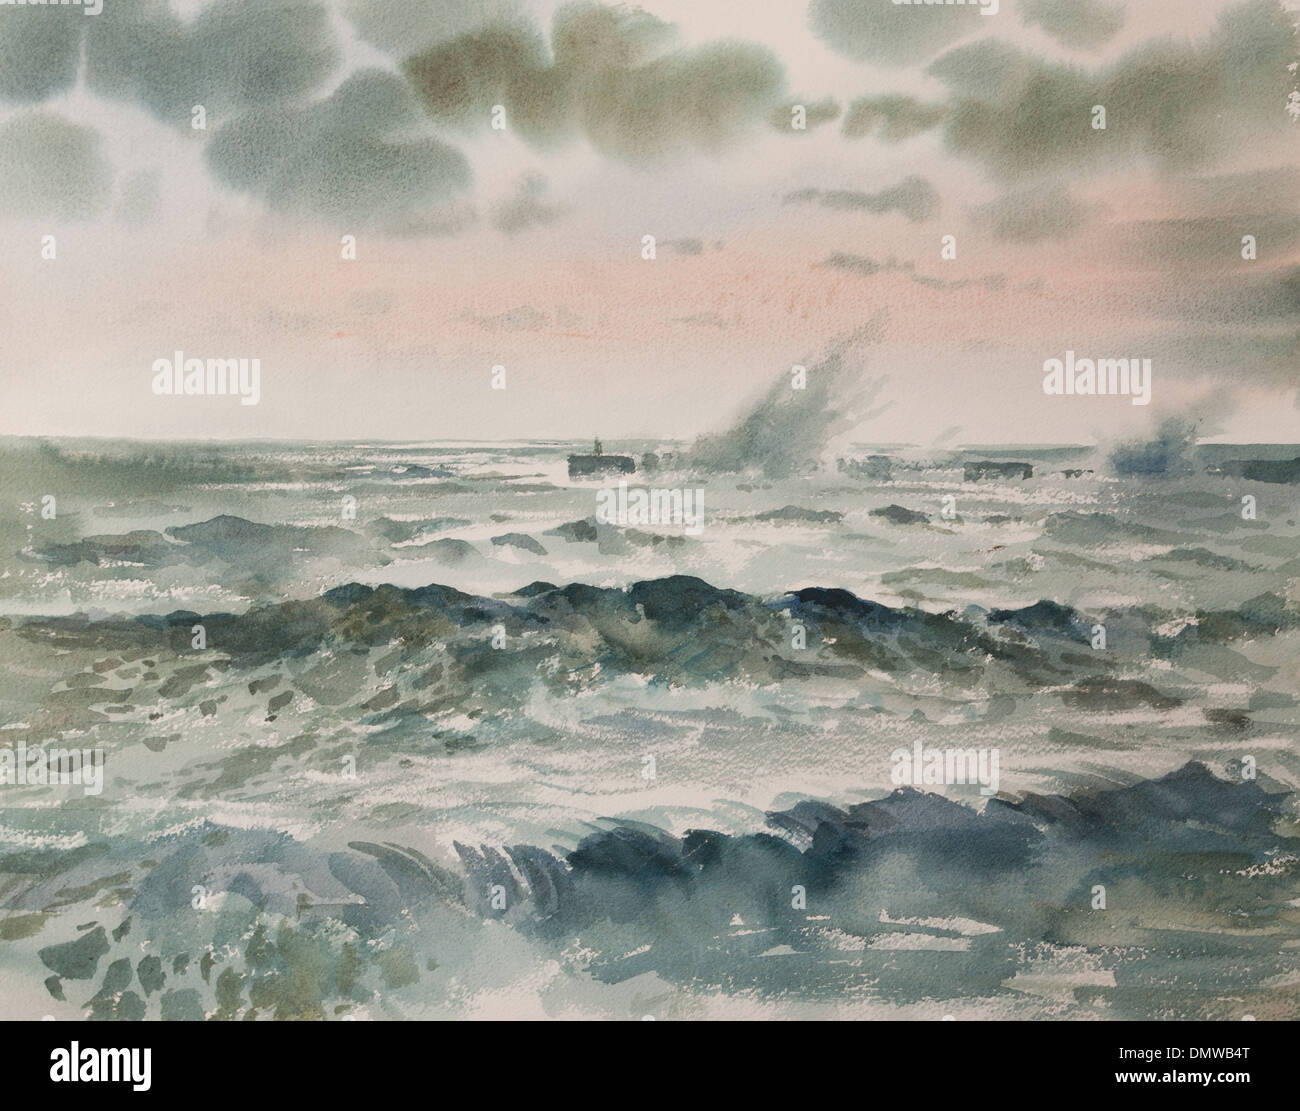 Dramatic Seascape Breaking Waves Watercolour Painting - Stock Image